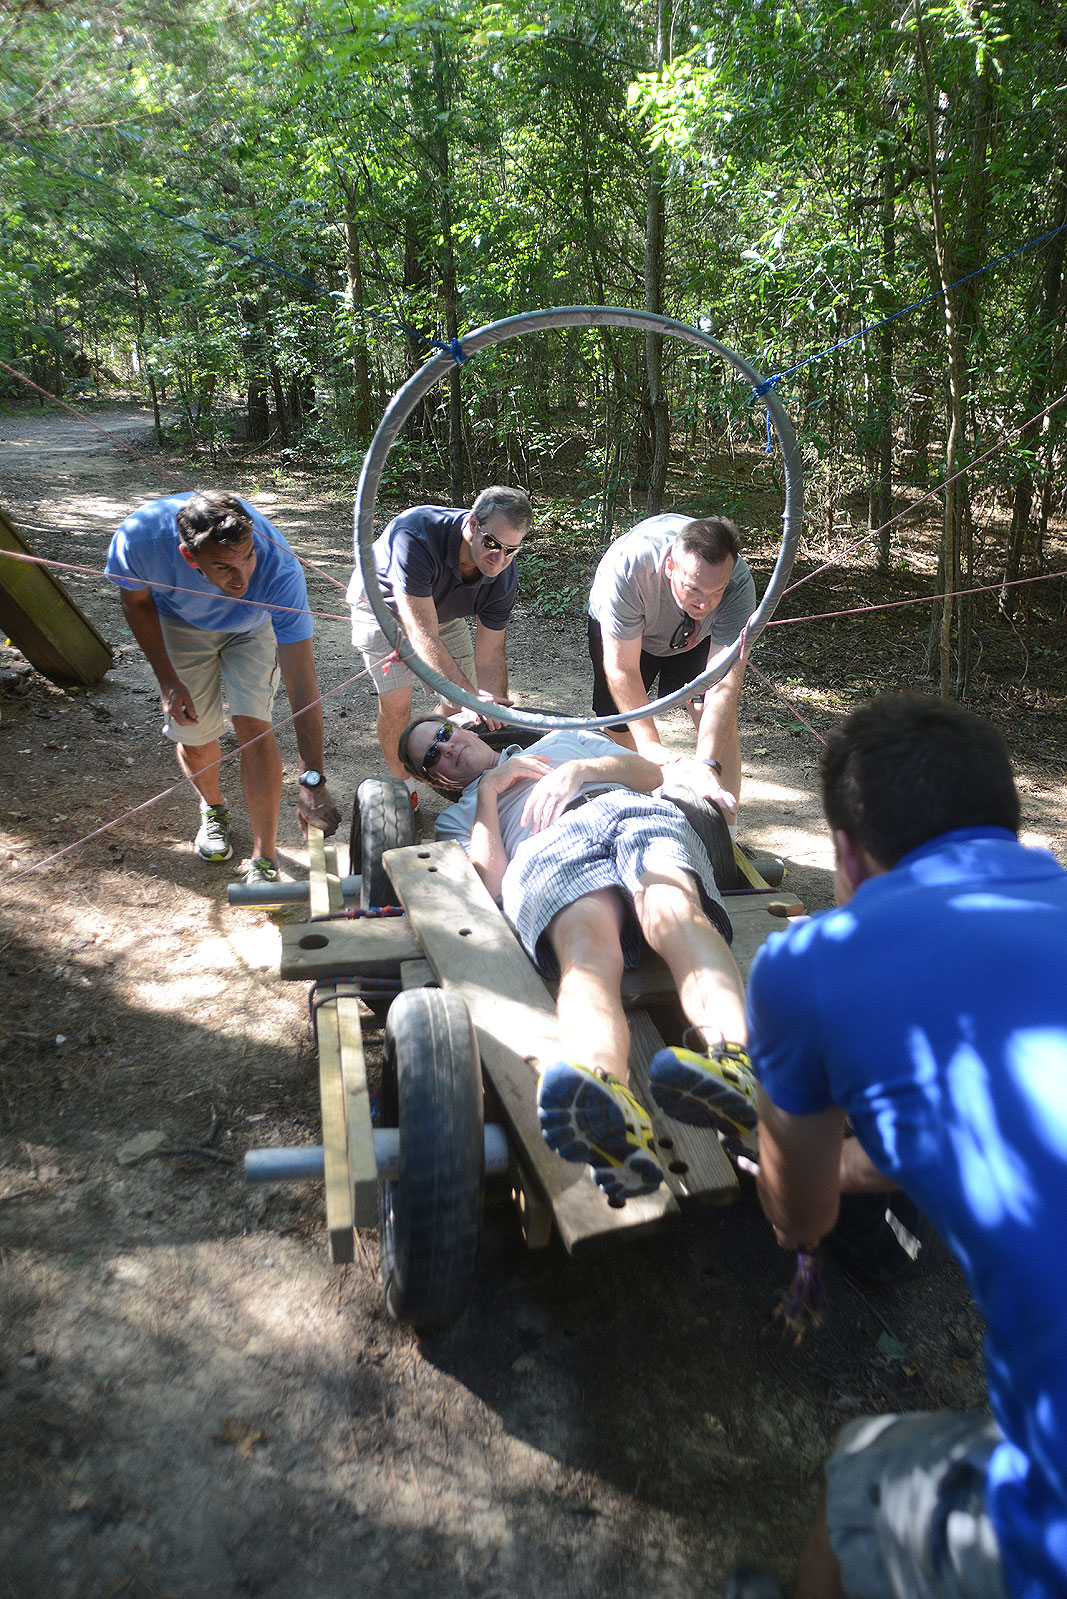 Satair Airbus at Xtreeme Challenge Private Teambuilding Event Center in Charlotte North Carolin